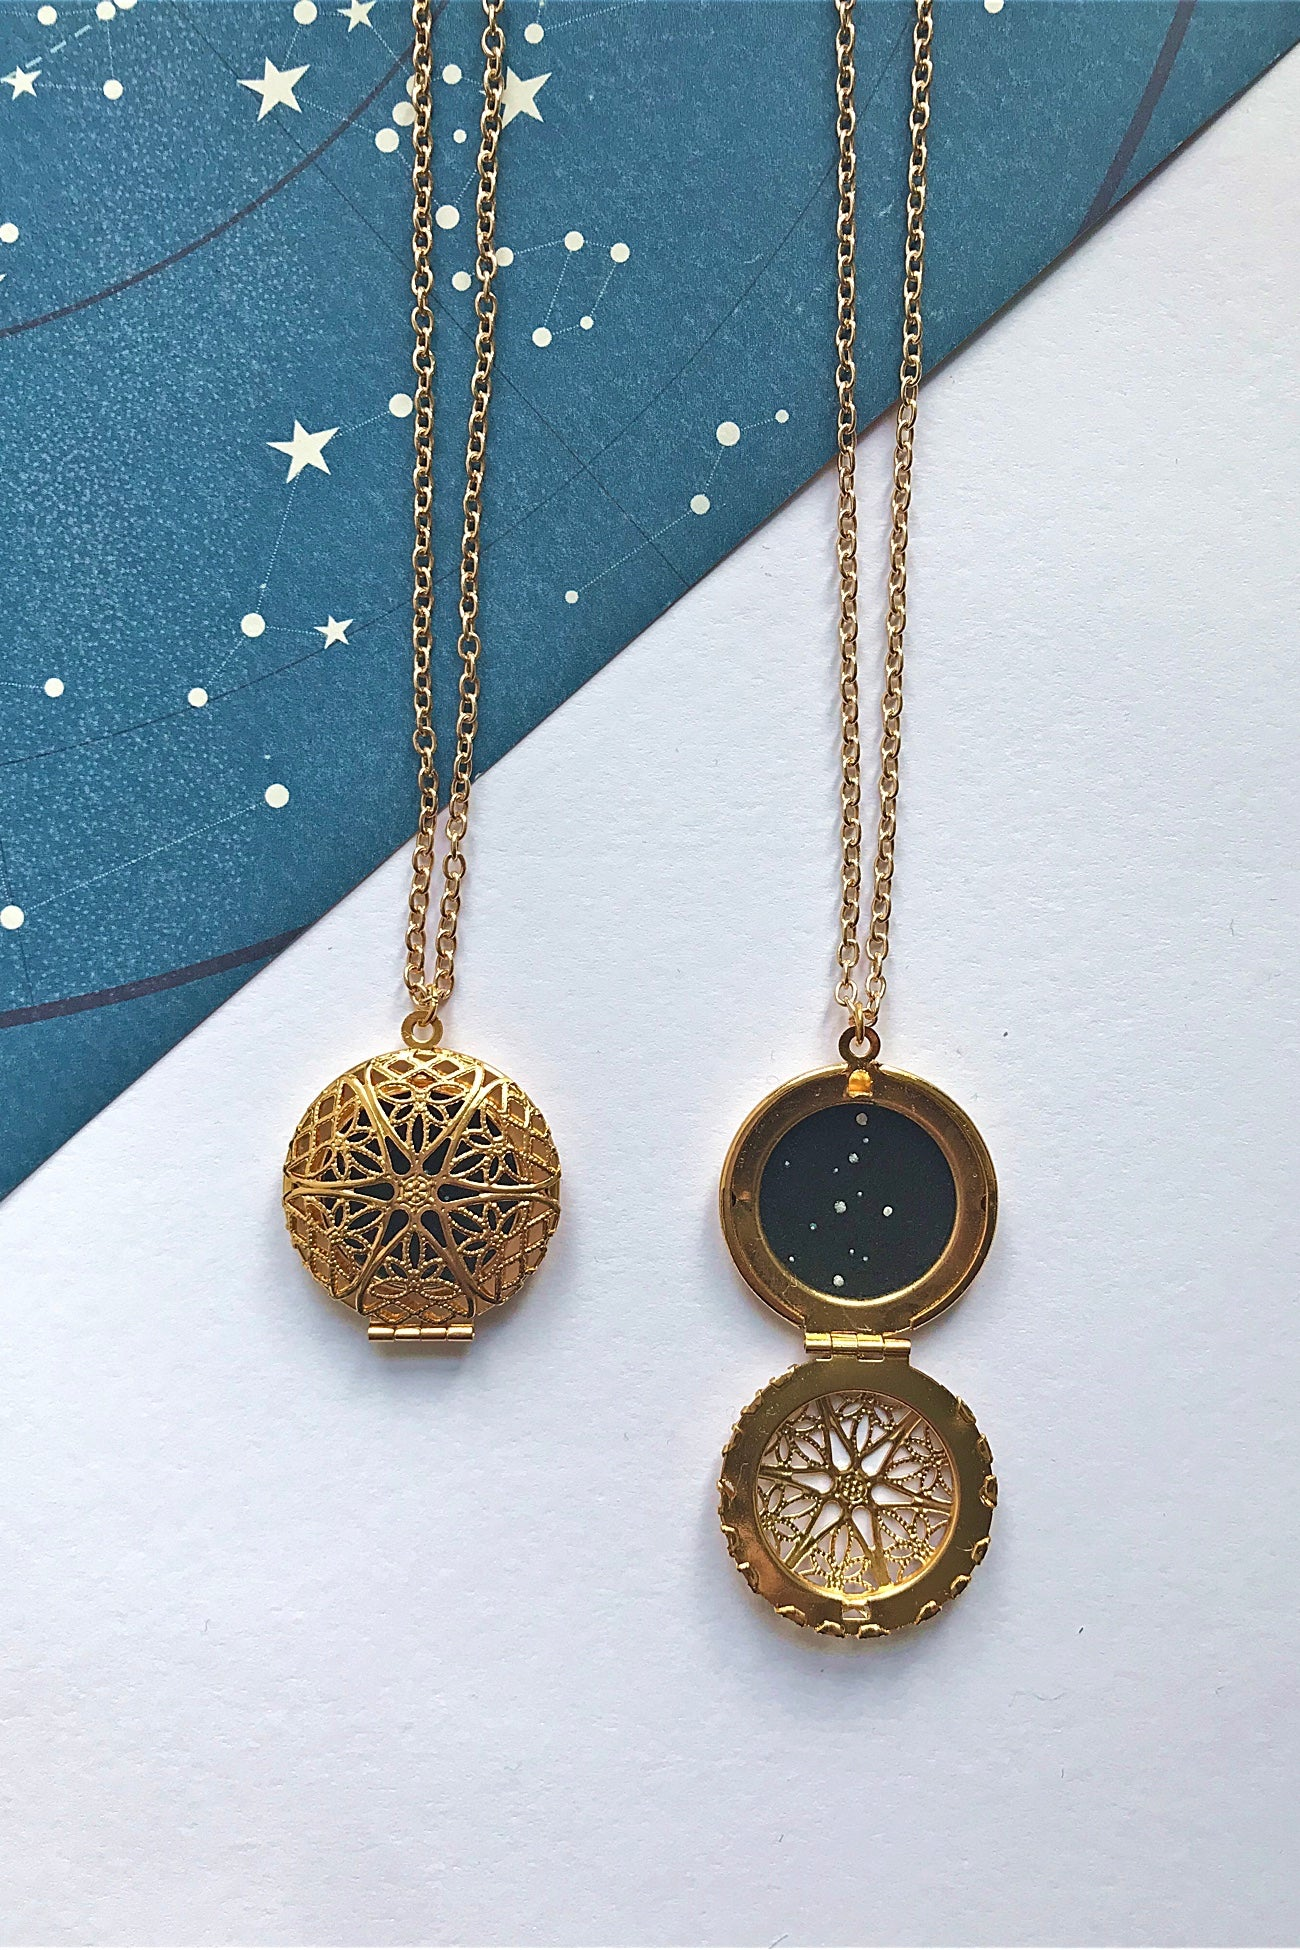 Virgo constellation locket